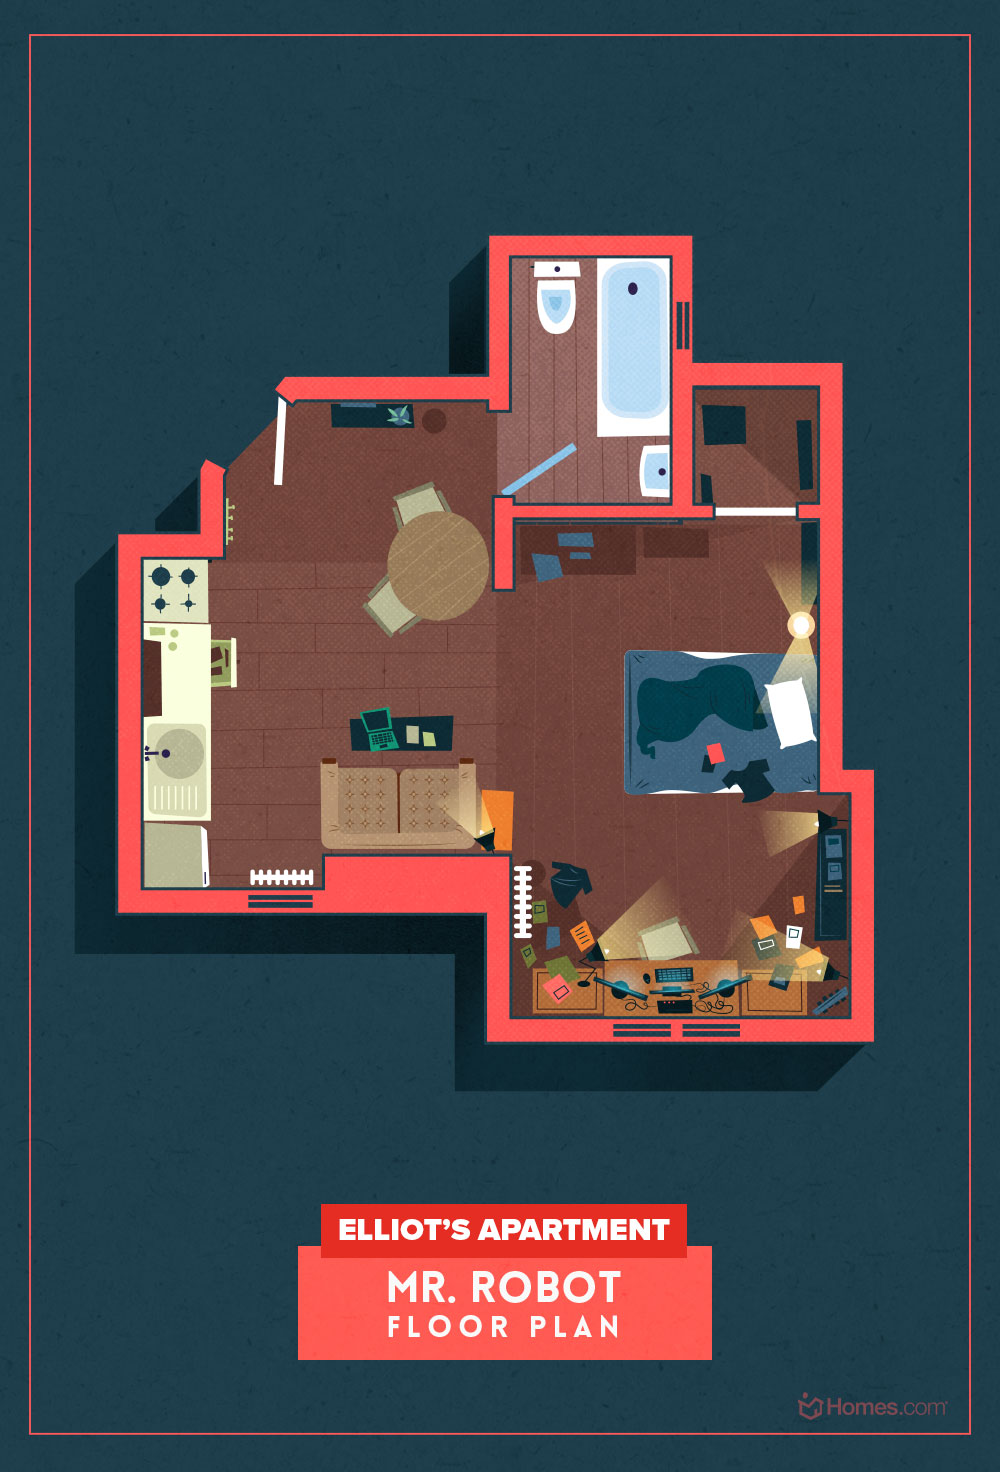 Floor Plans Of Popular TV Show Homes - Mr Robot